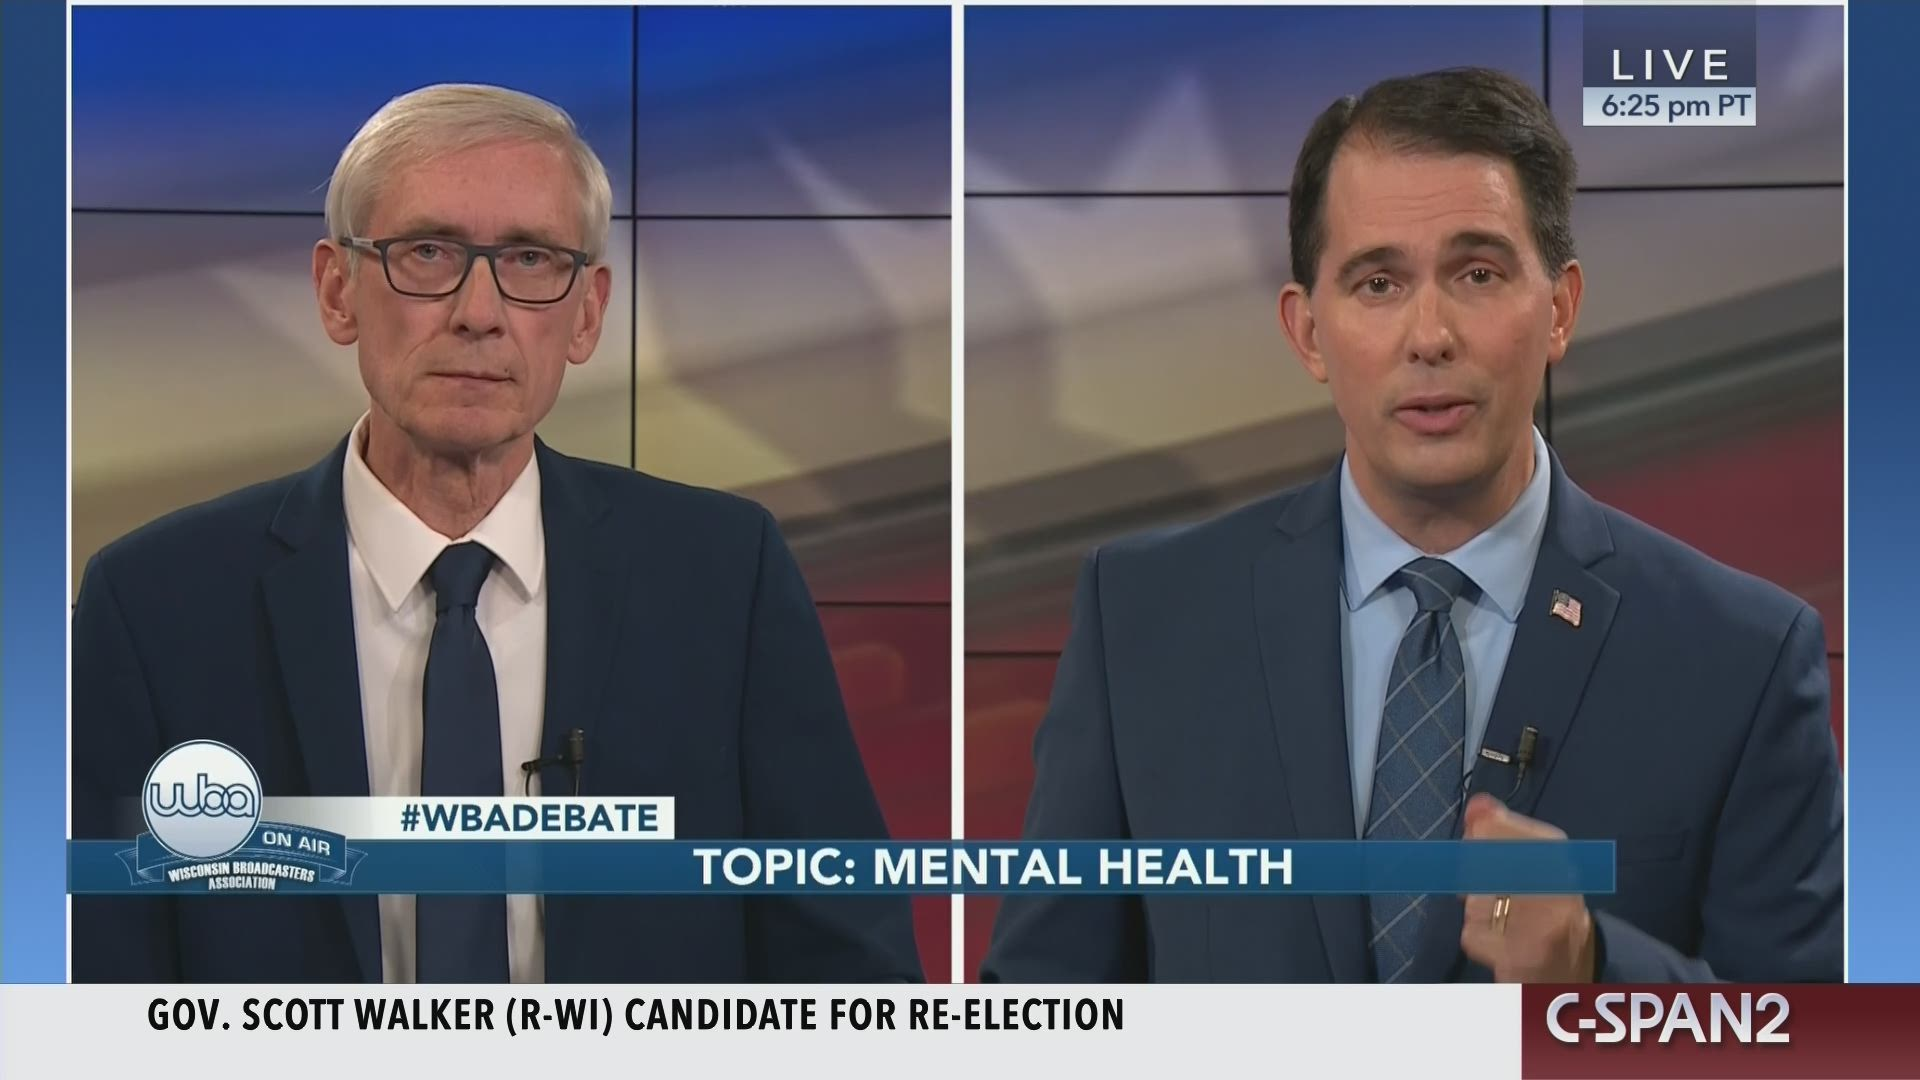 Seriously Folks This Madison Tv Viewer >> Wisconsin Gubernatorial Debate C Span Org